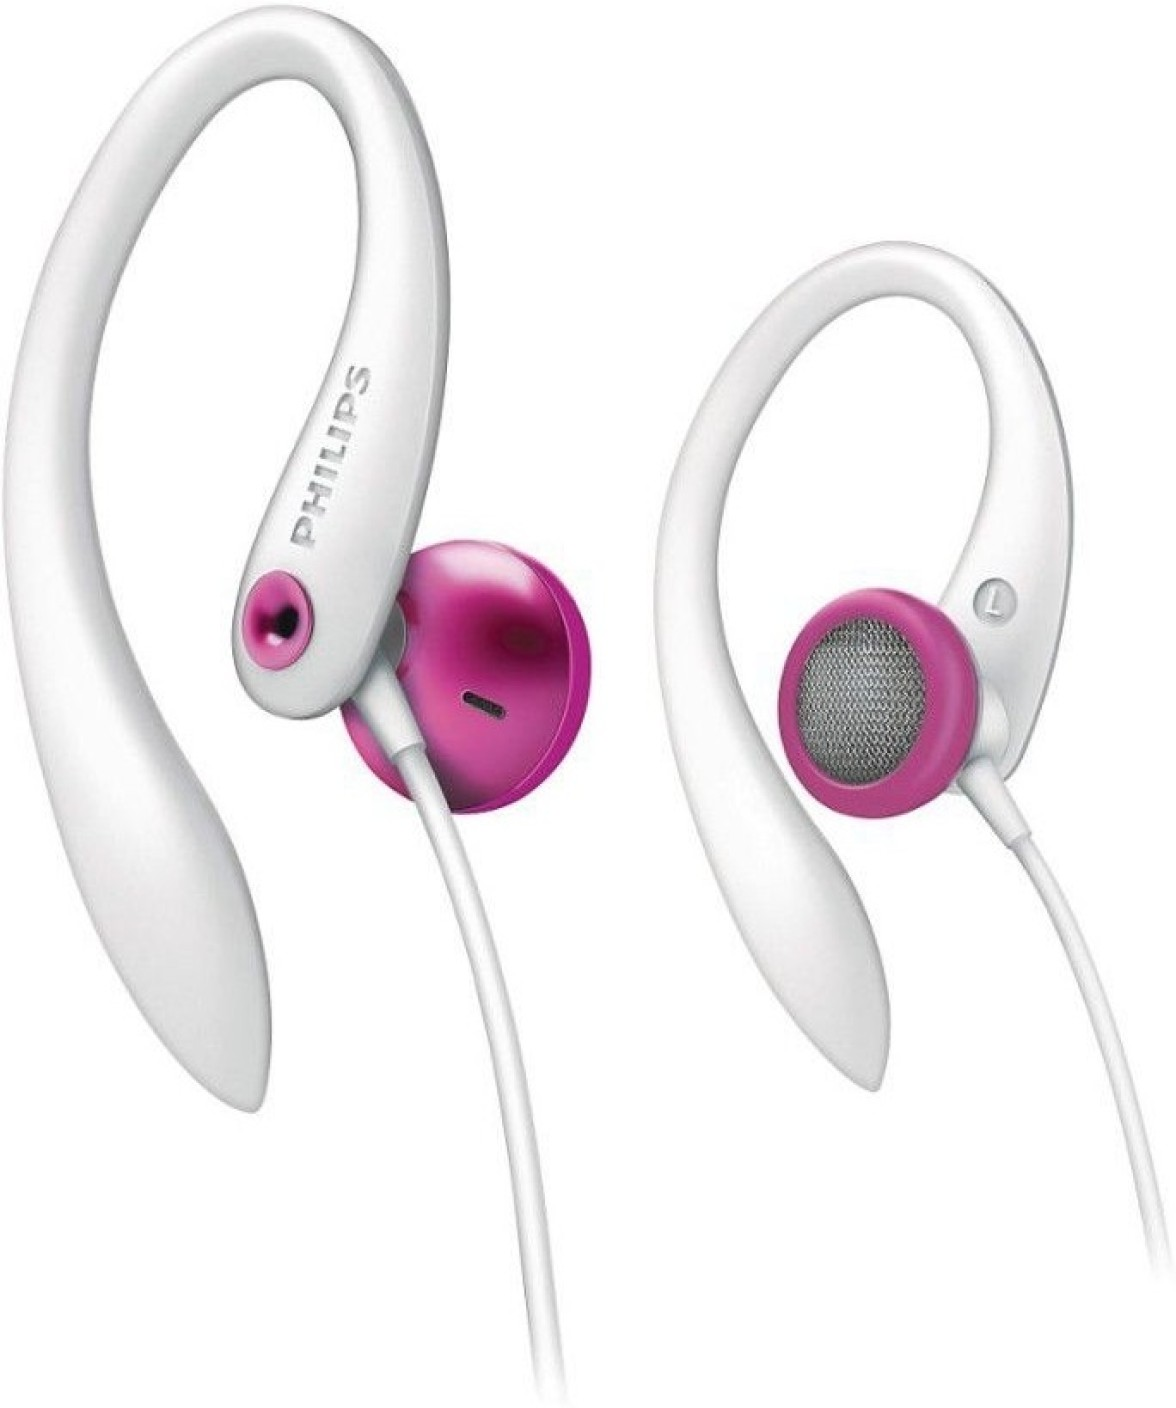 Philips SHS 3213/28 Headphone Price in India